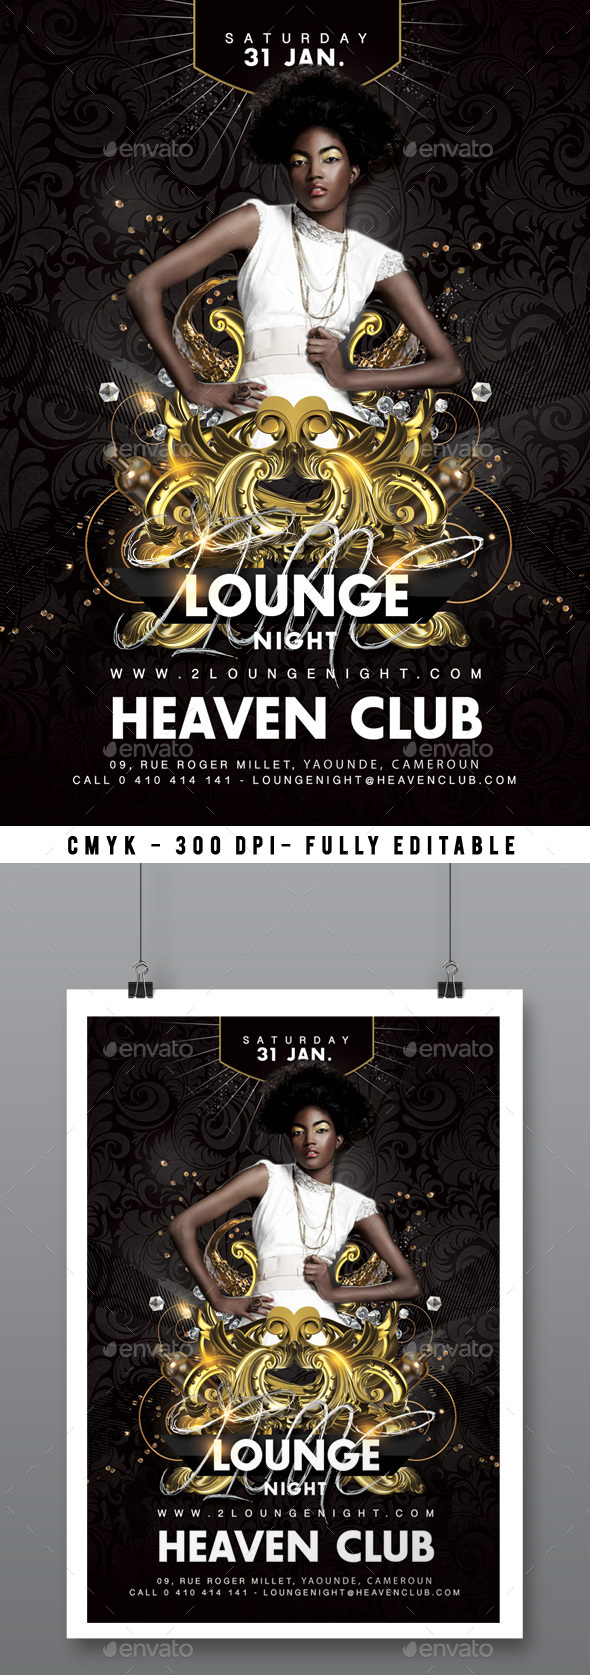 Lounge Party Flyer - Clubs & Parties Events